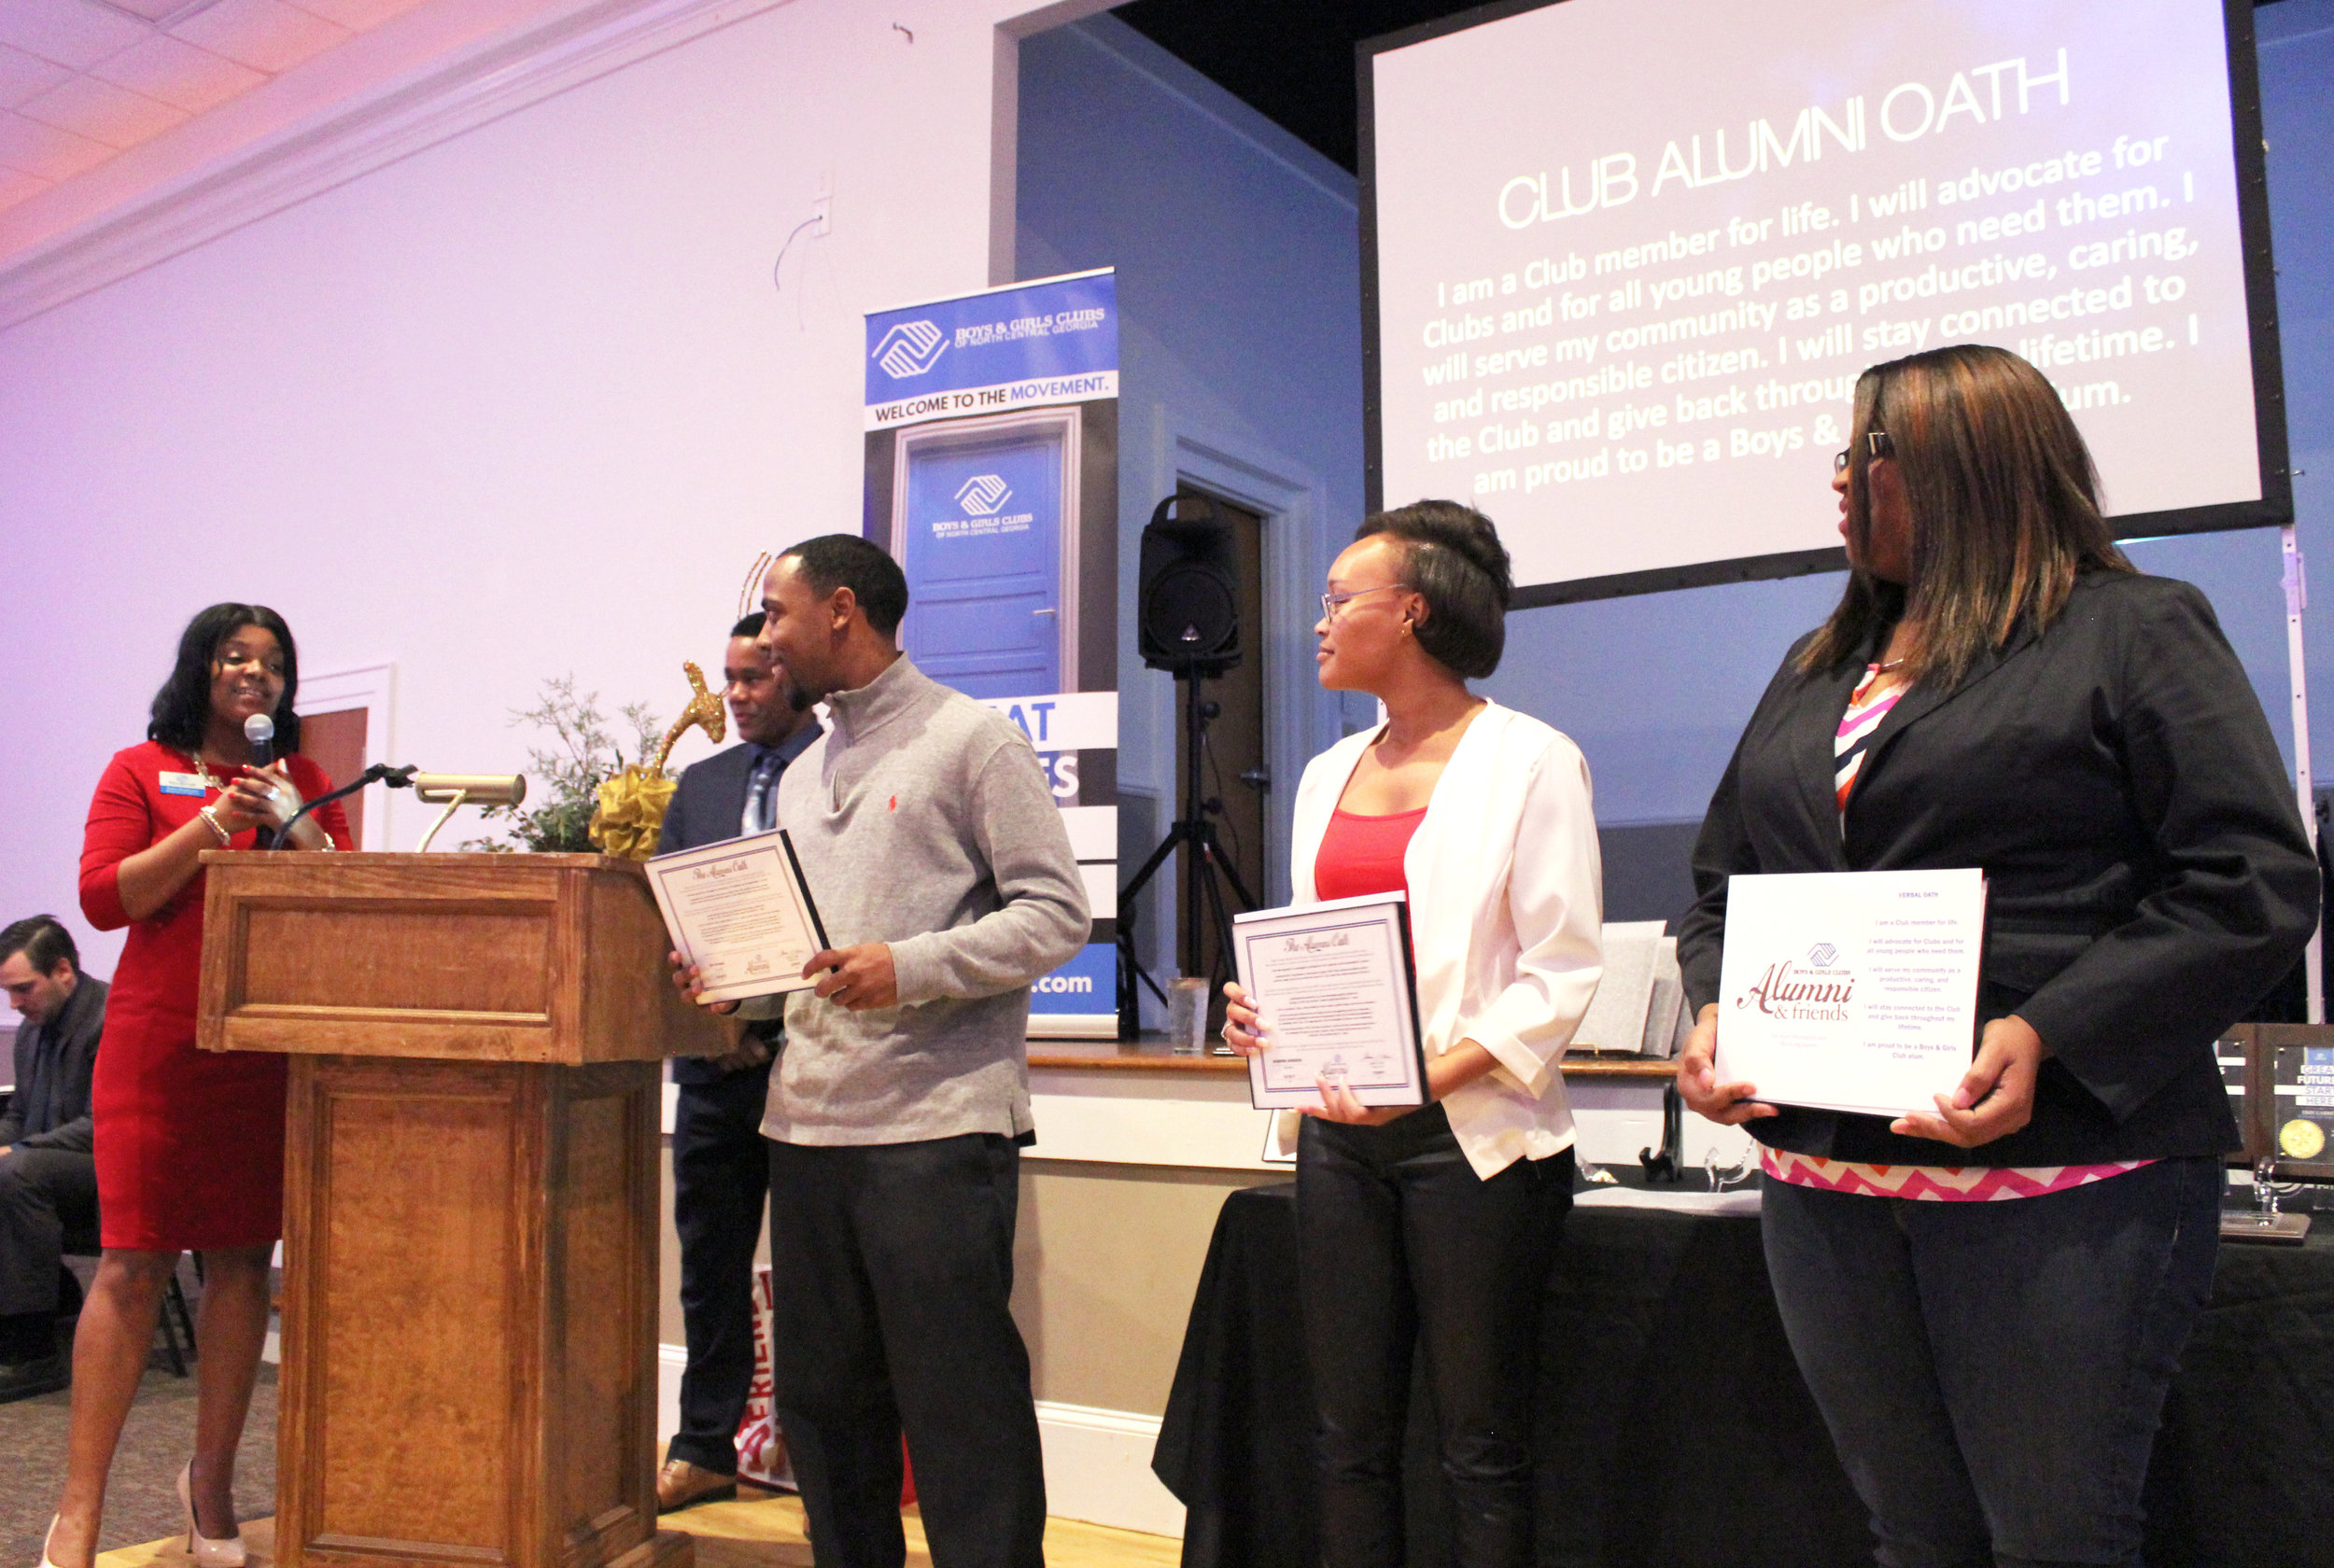 Karen Robertson leads Tay Hyman (MMBGC), Diondra Burgess (PNBGC) and Chastity Morrissette (WCBGC) in the alumni oath.